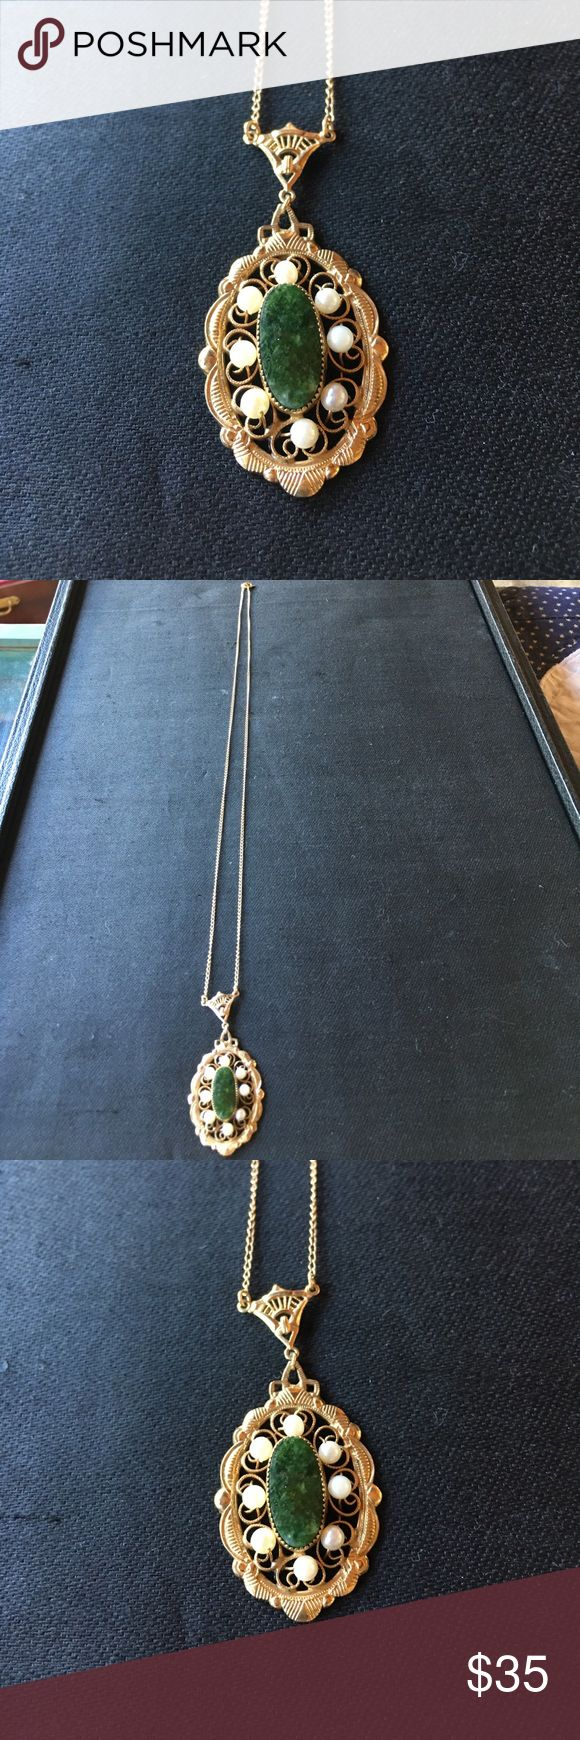 Pearl and jade necklace 20 inch chain 12k gf with a 2 inch drop pendant all genuine pearls and jade stone Jewelry Necklaces